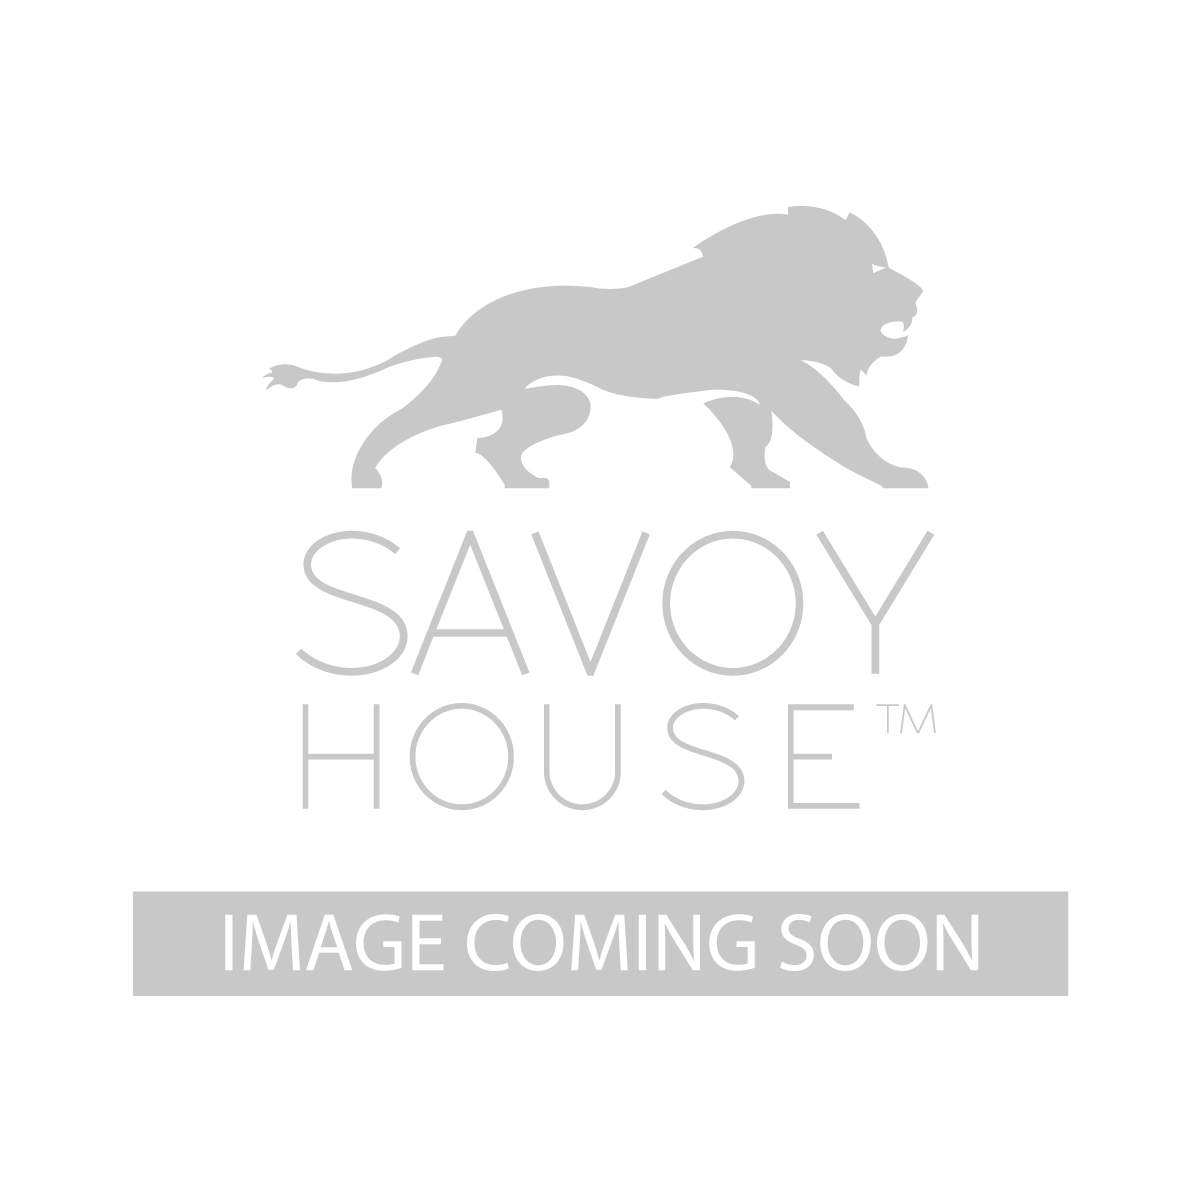 52 083 5ro 13 portico outdoor ceiling fan by savoy house portico outdoor ceiling fan aloadofball Choice Image